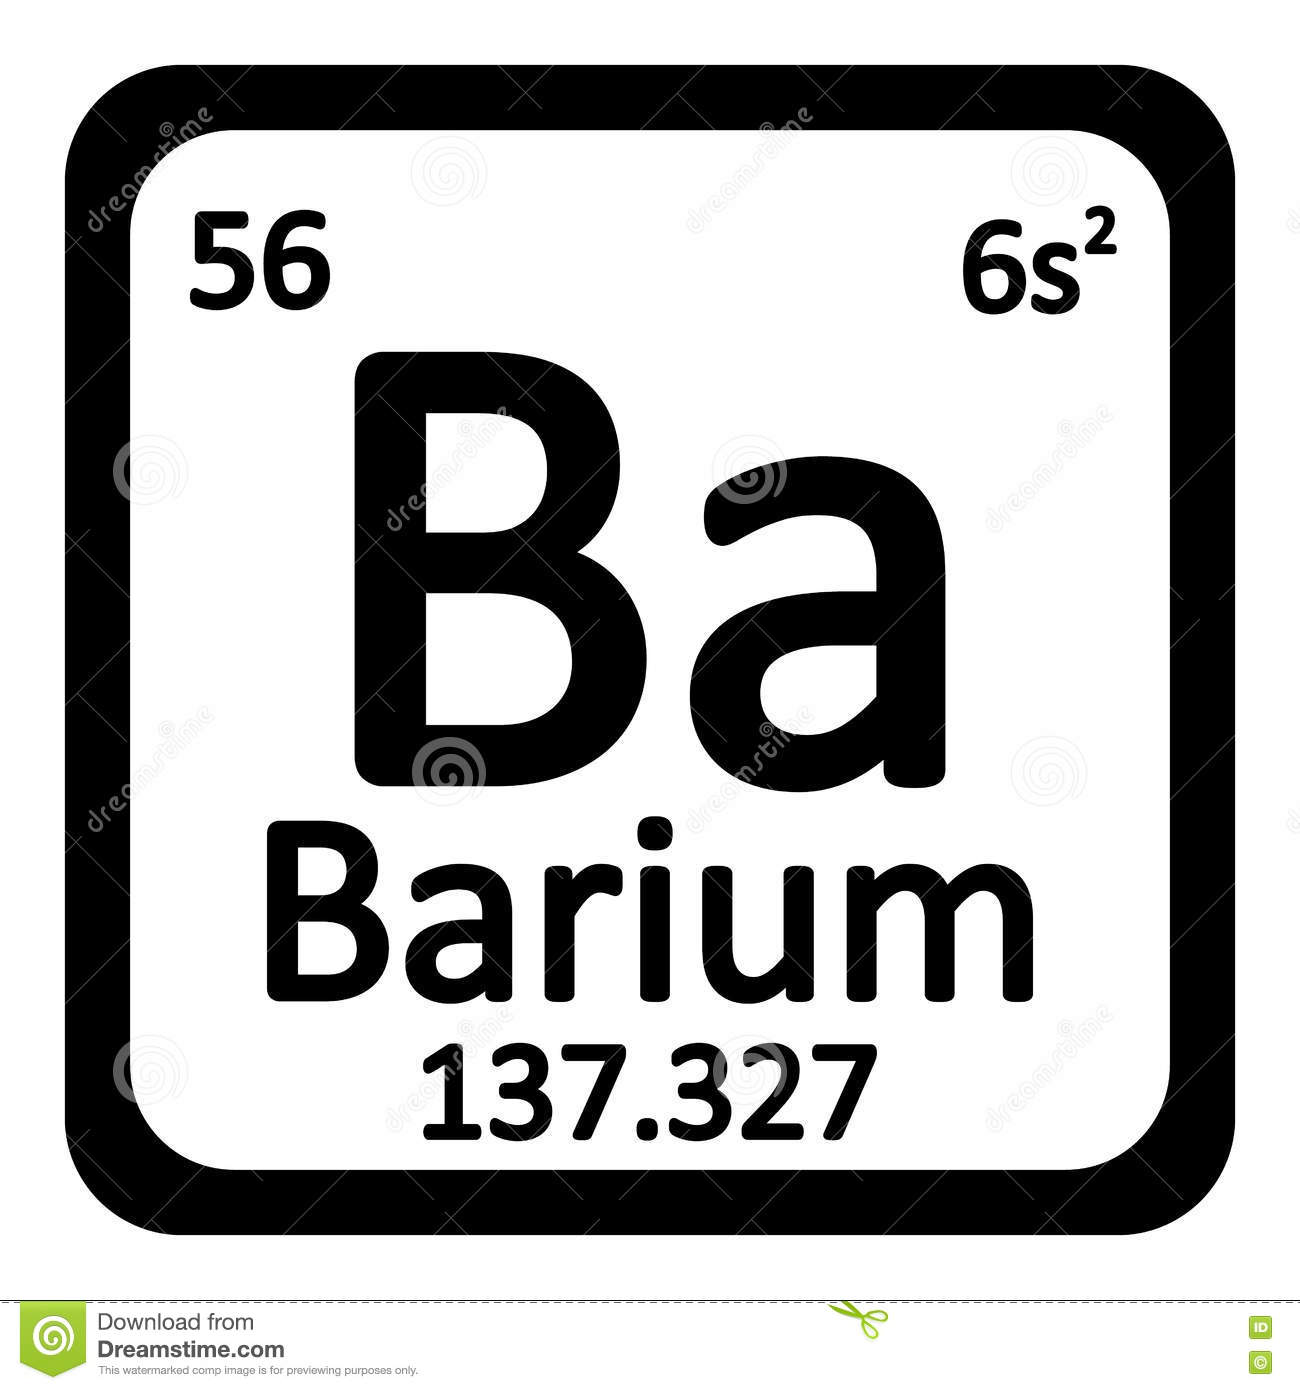 Periodic table element barium icon stock illustration image royalty free illustration download periodic table element barium gamestrikefo Gallery